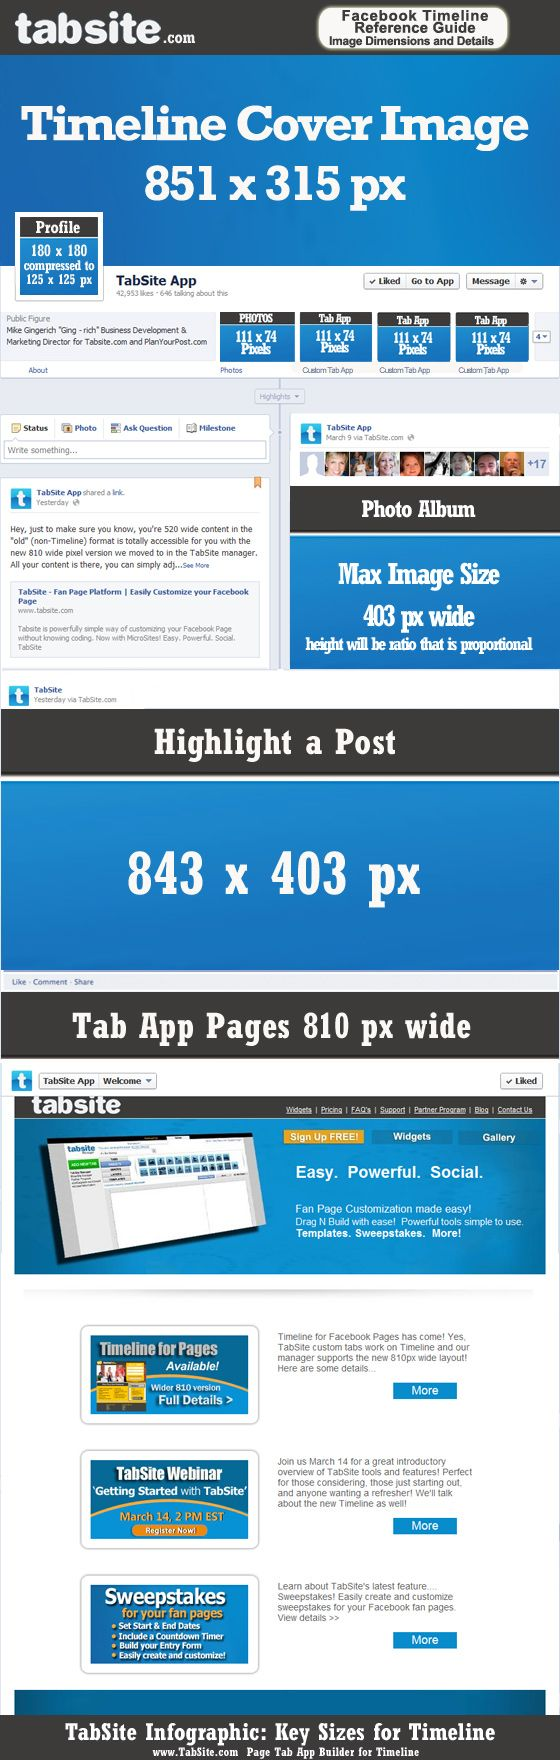 Facebook Timeline Infographic.  All you need to know about image sizes!